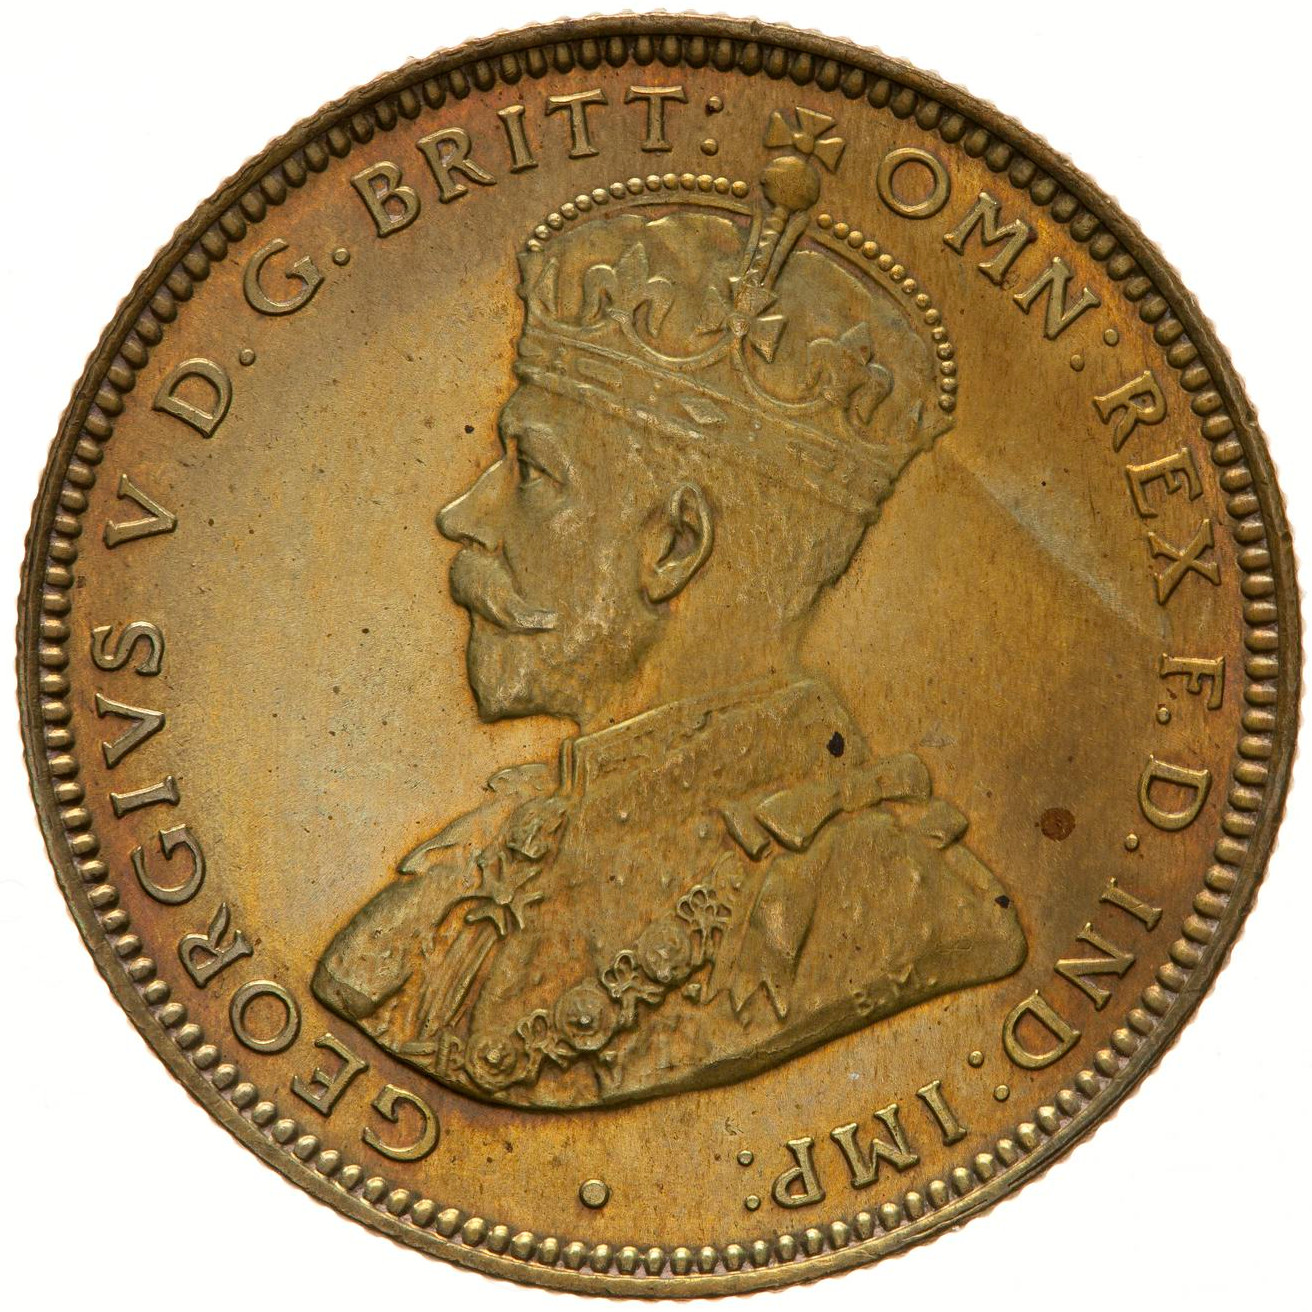 Shilling: Photo Proof Coin - 1 Shilling, British West Africa, 1925